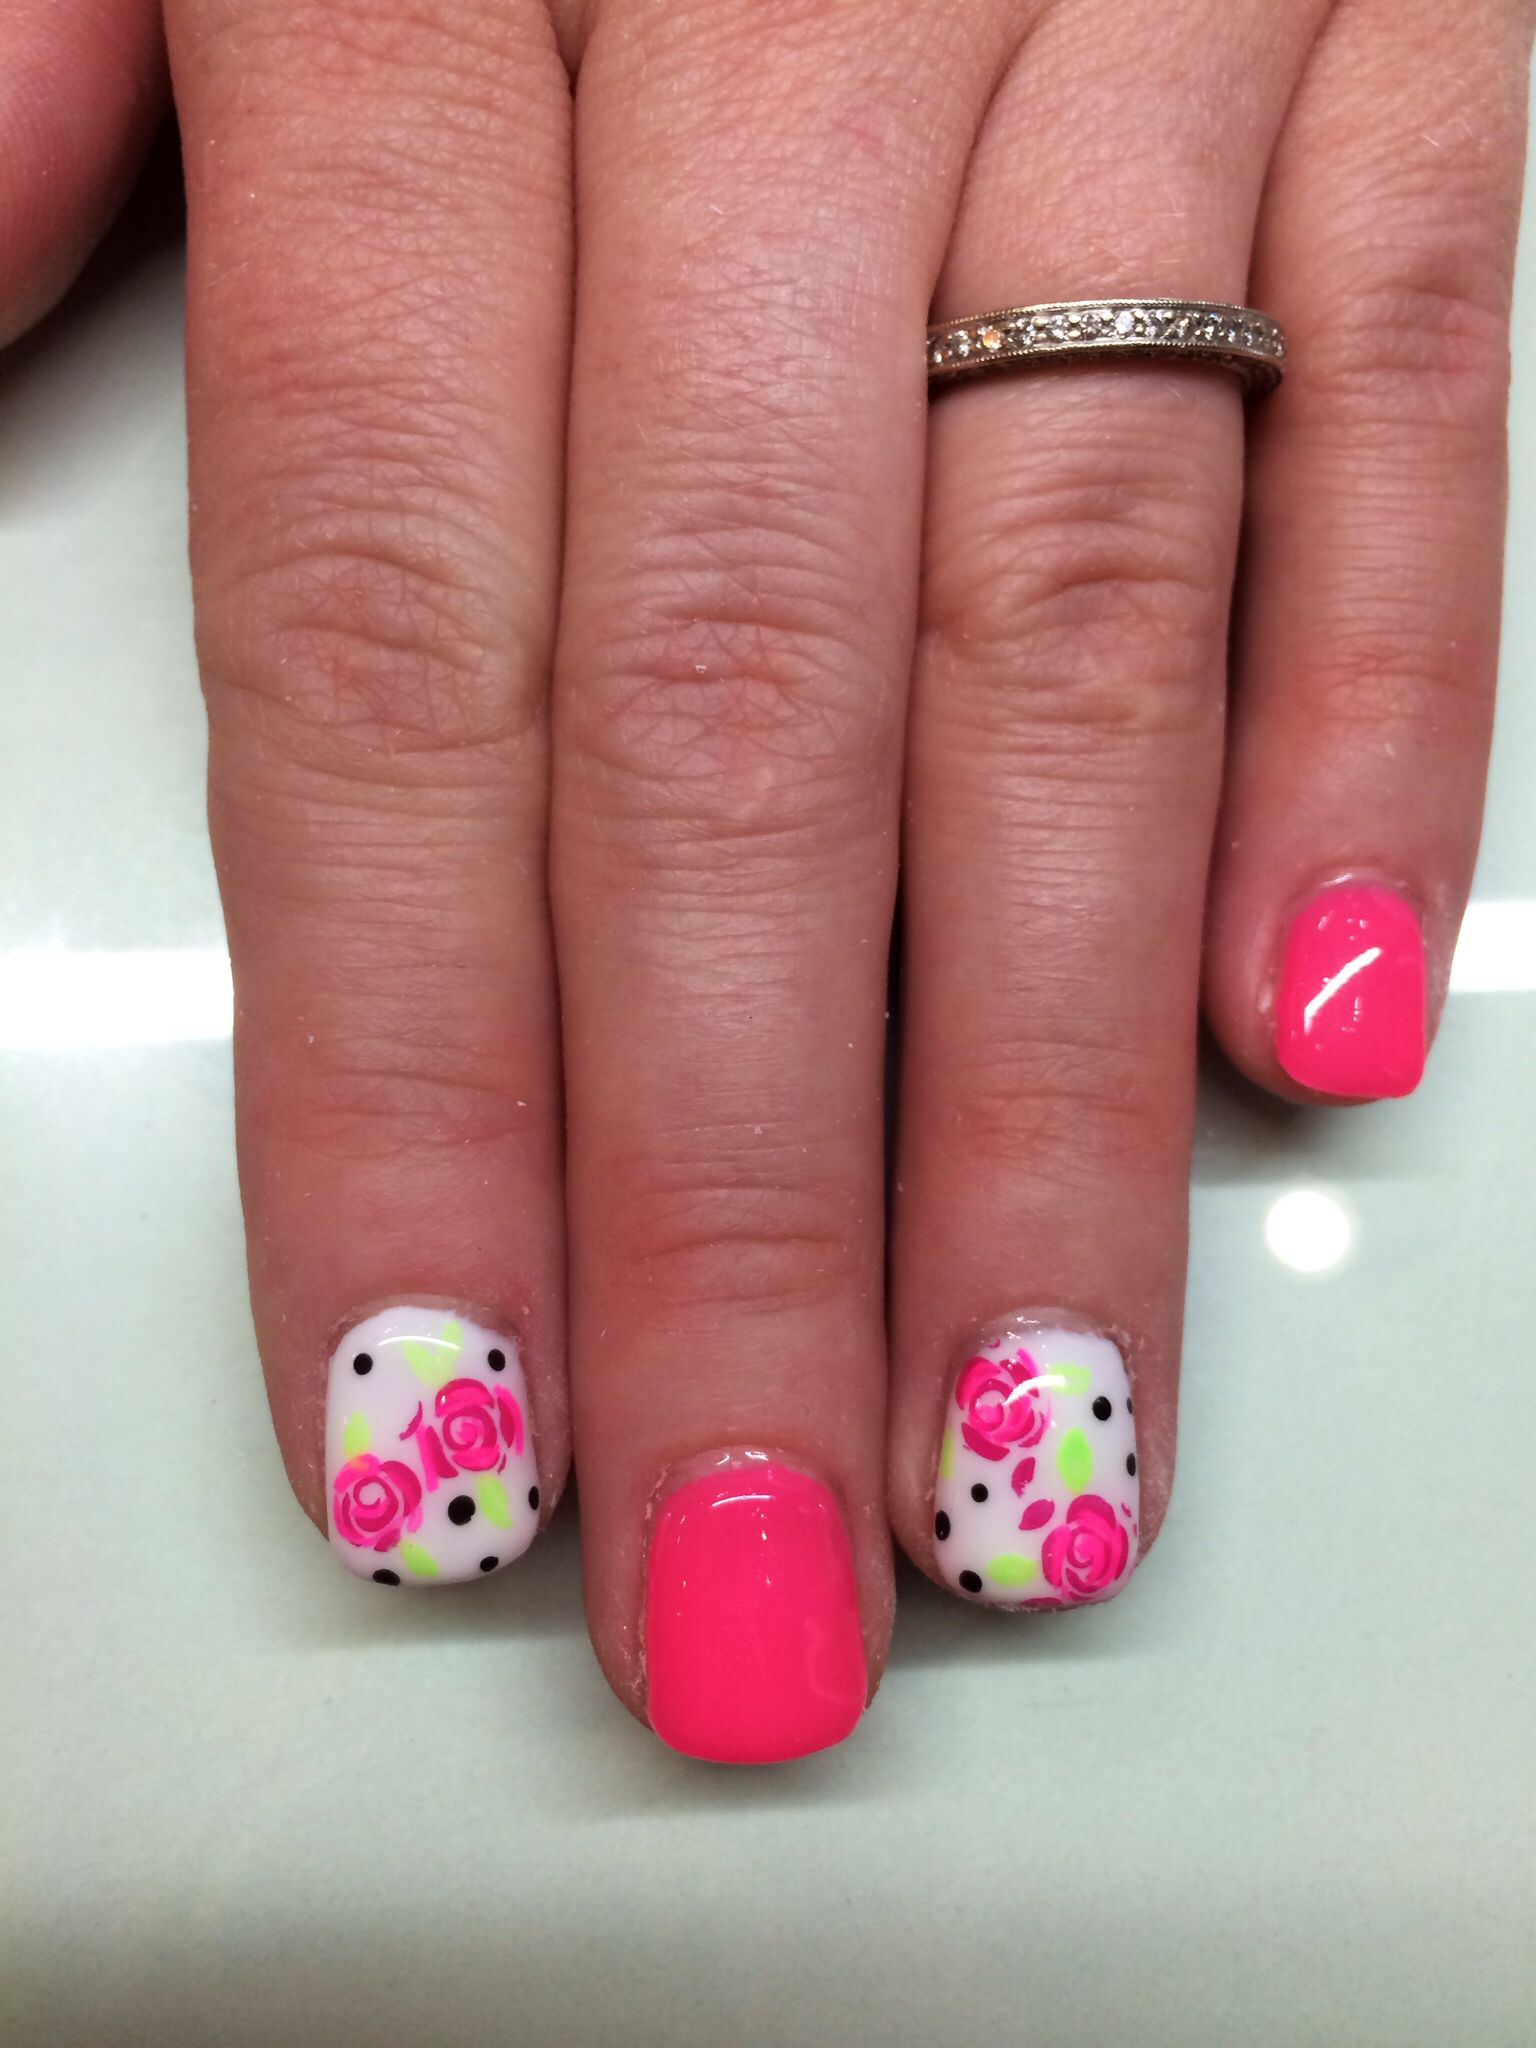 Rose and pink gel nails. Short overlay